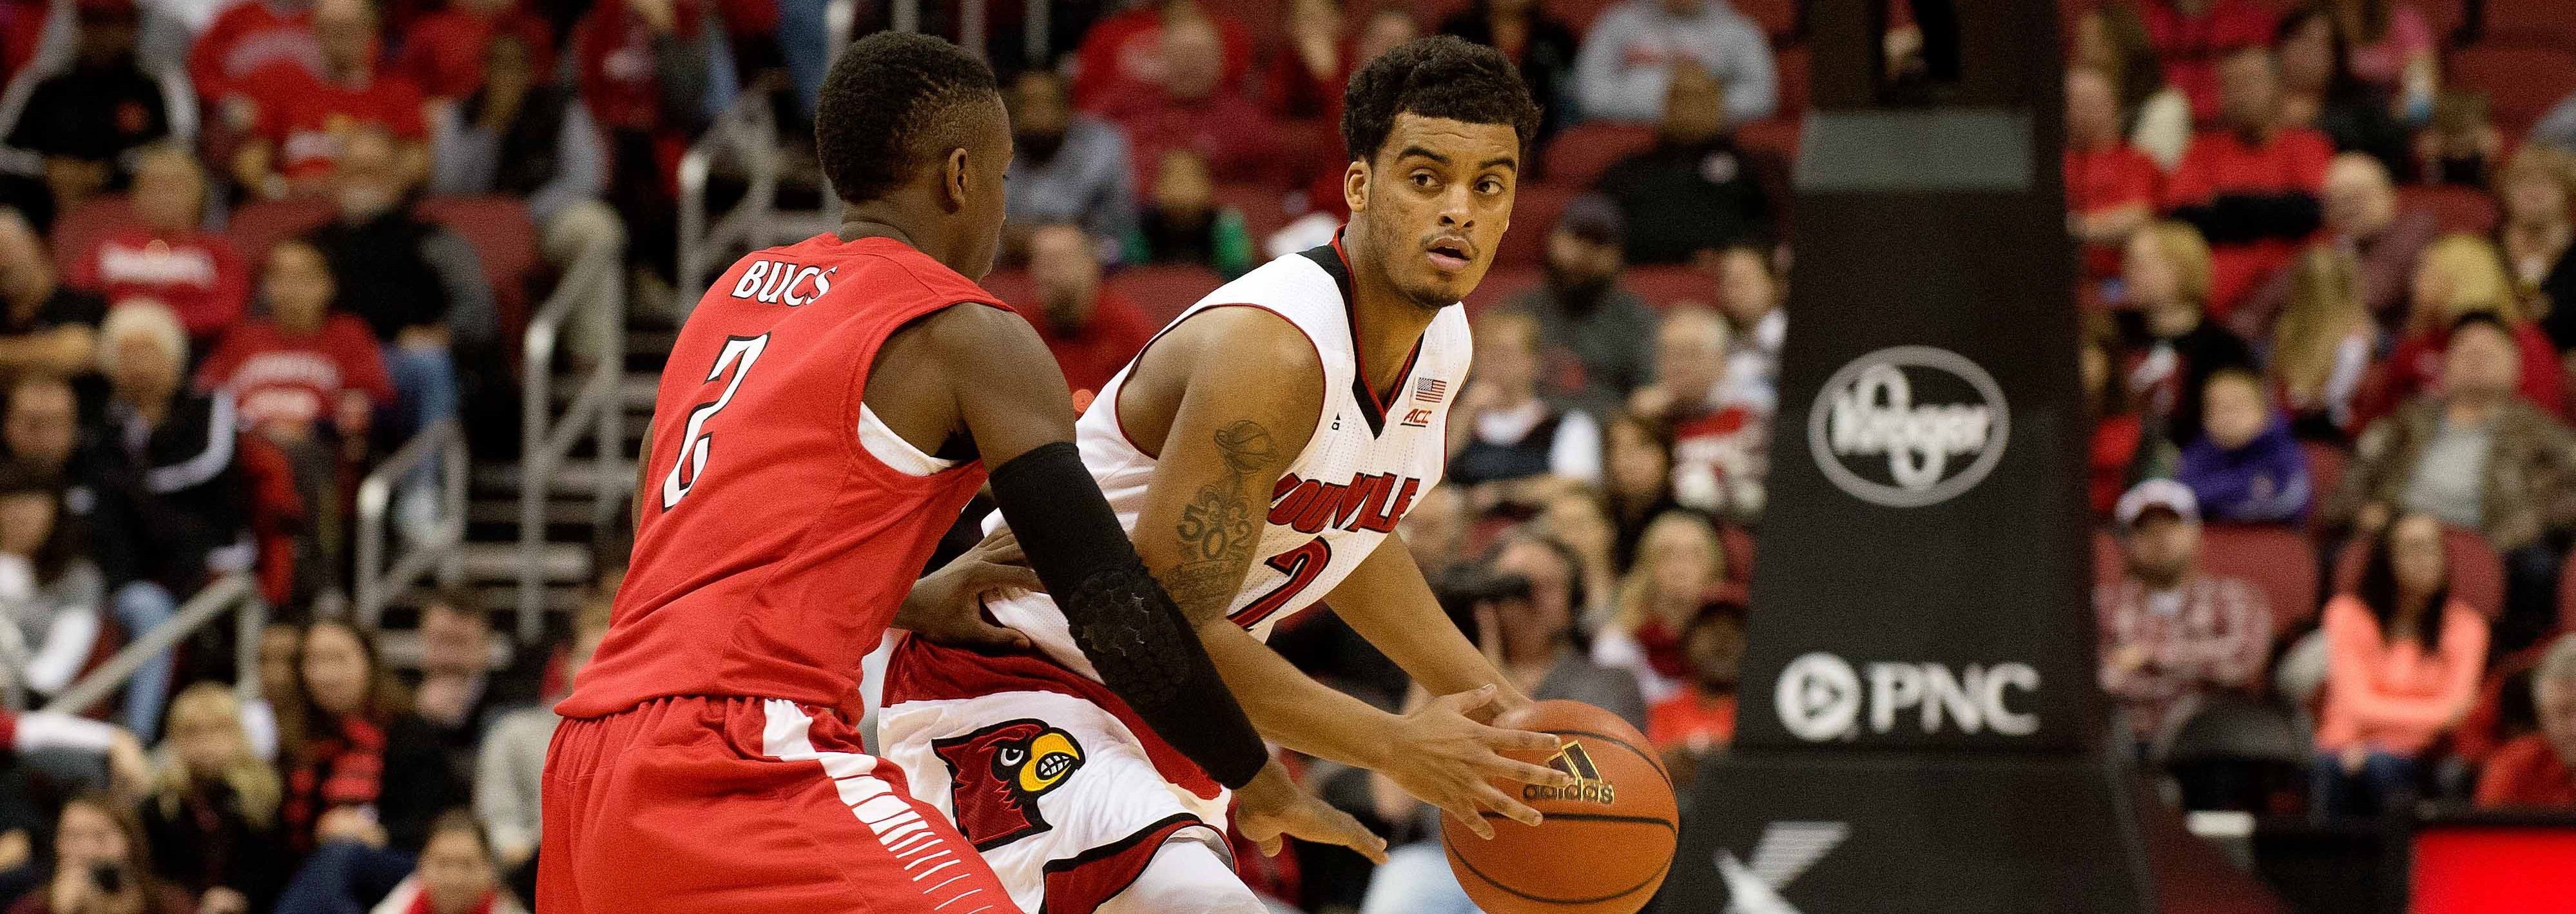 Quentin Snider Louisville vs. Barry 11-1-2014 Photo by Adam Creech Fitted